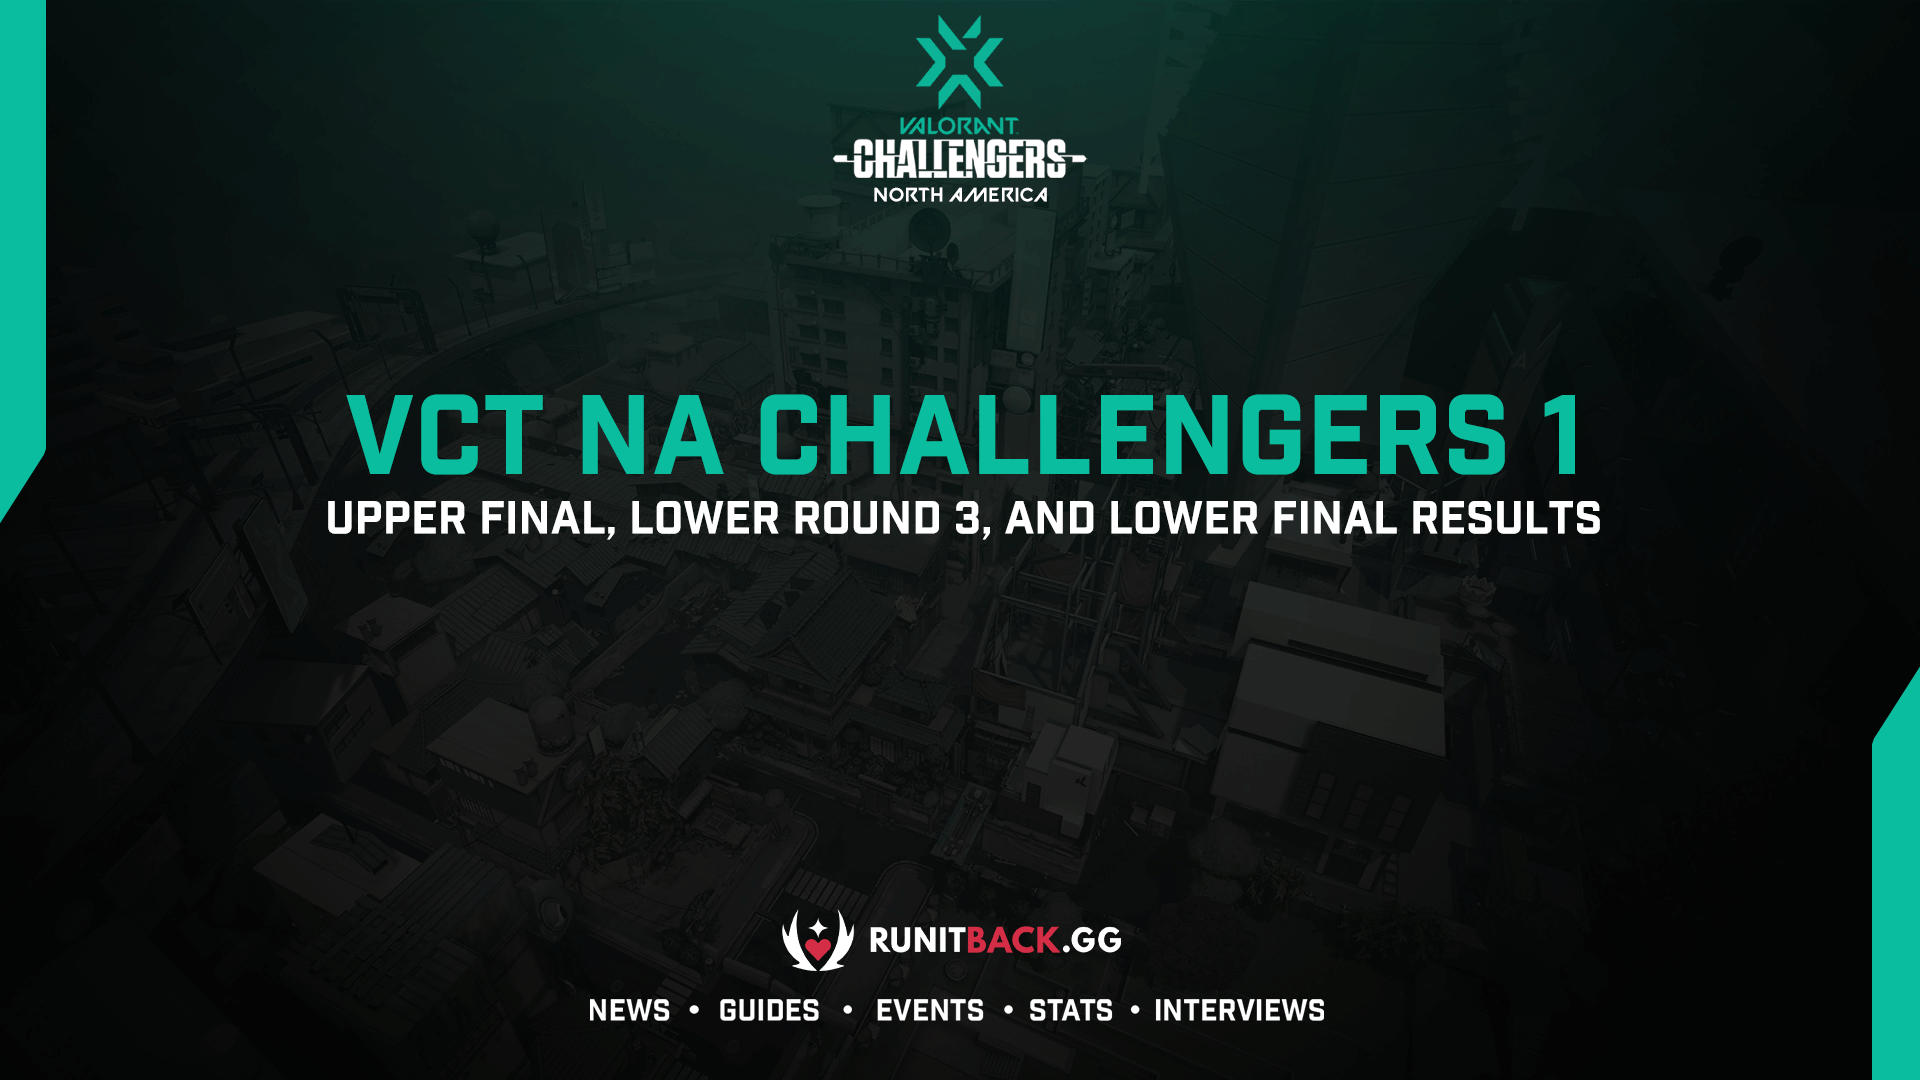 VCT NA Challengers 1 Main Event: Upper Final, Lower Round 3, and Lower Final Results